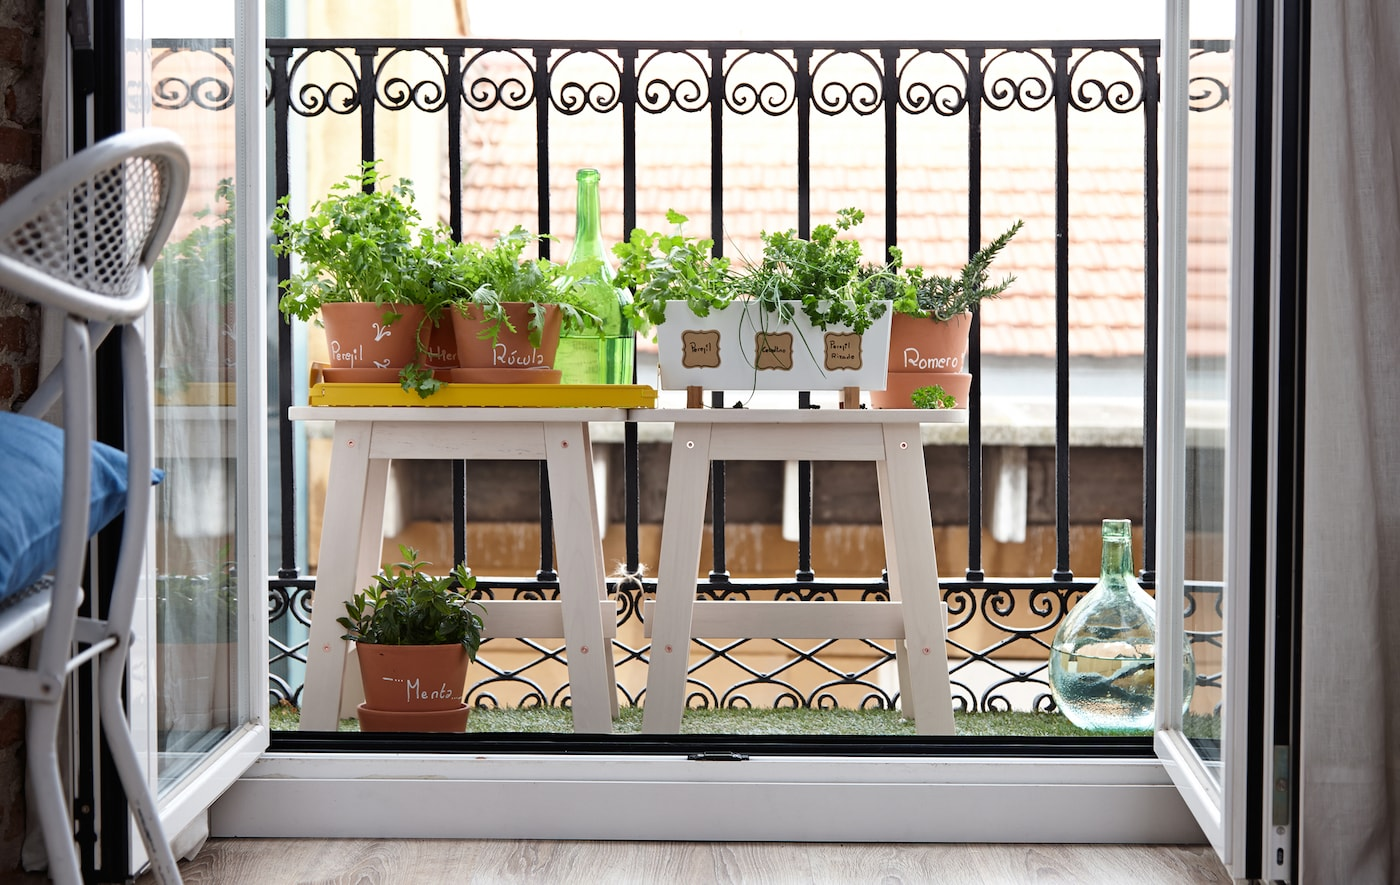 Furnish a tiny balcony with plants to extend living space.